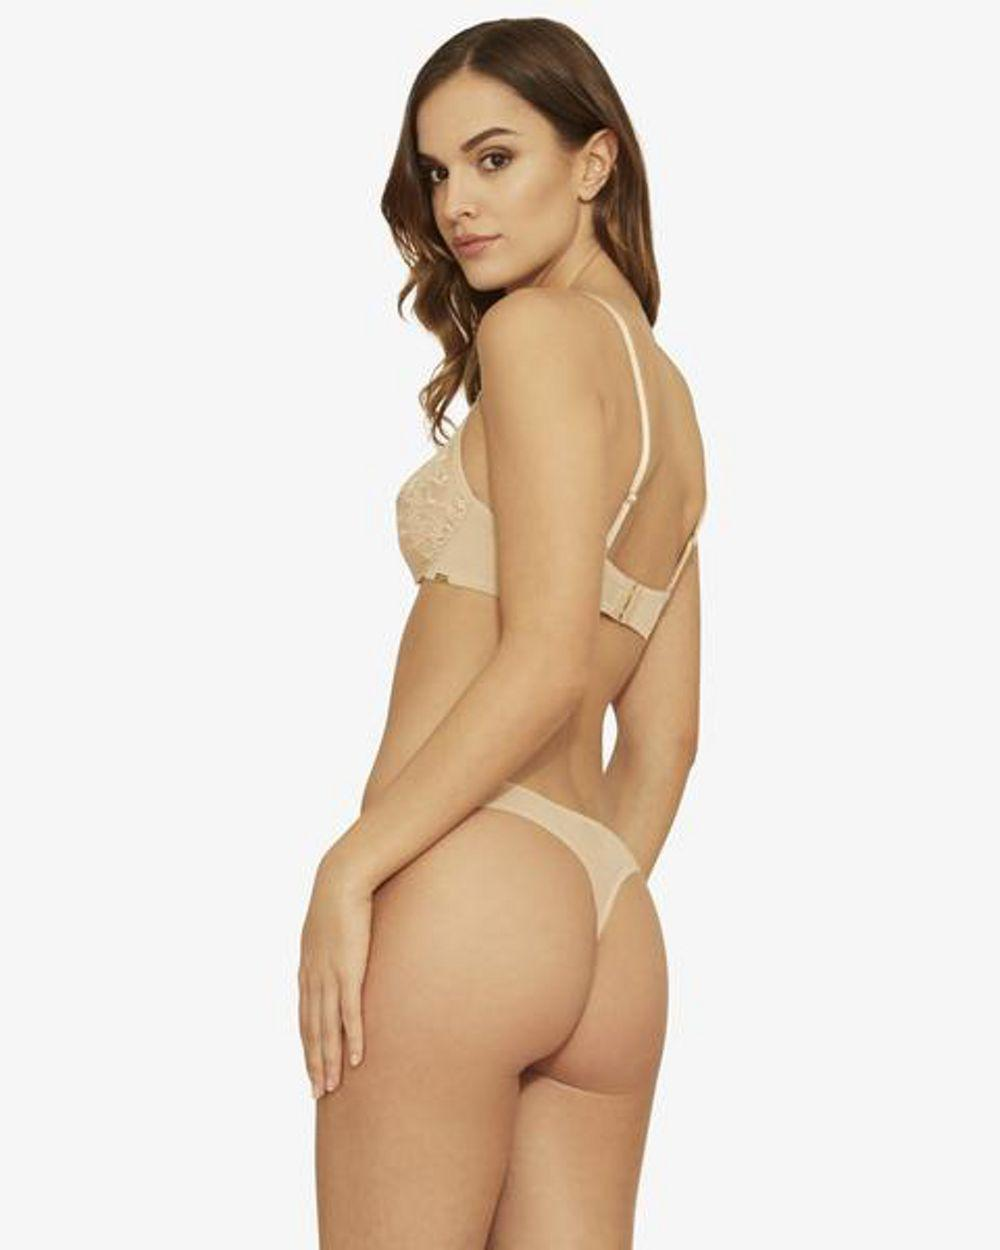 f006883e36 Lyst - Gossard Glossies Lace Thong in Natural